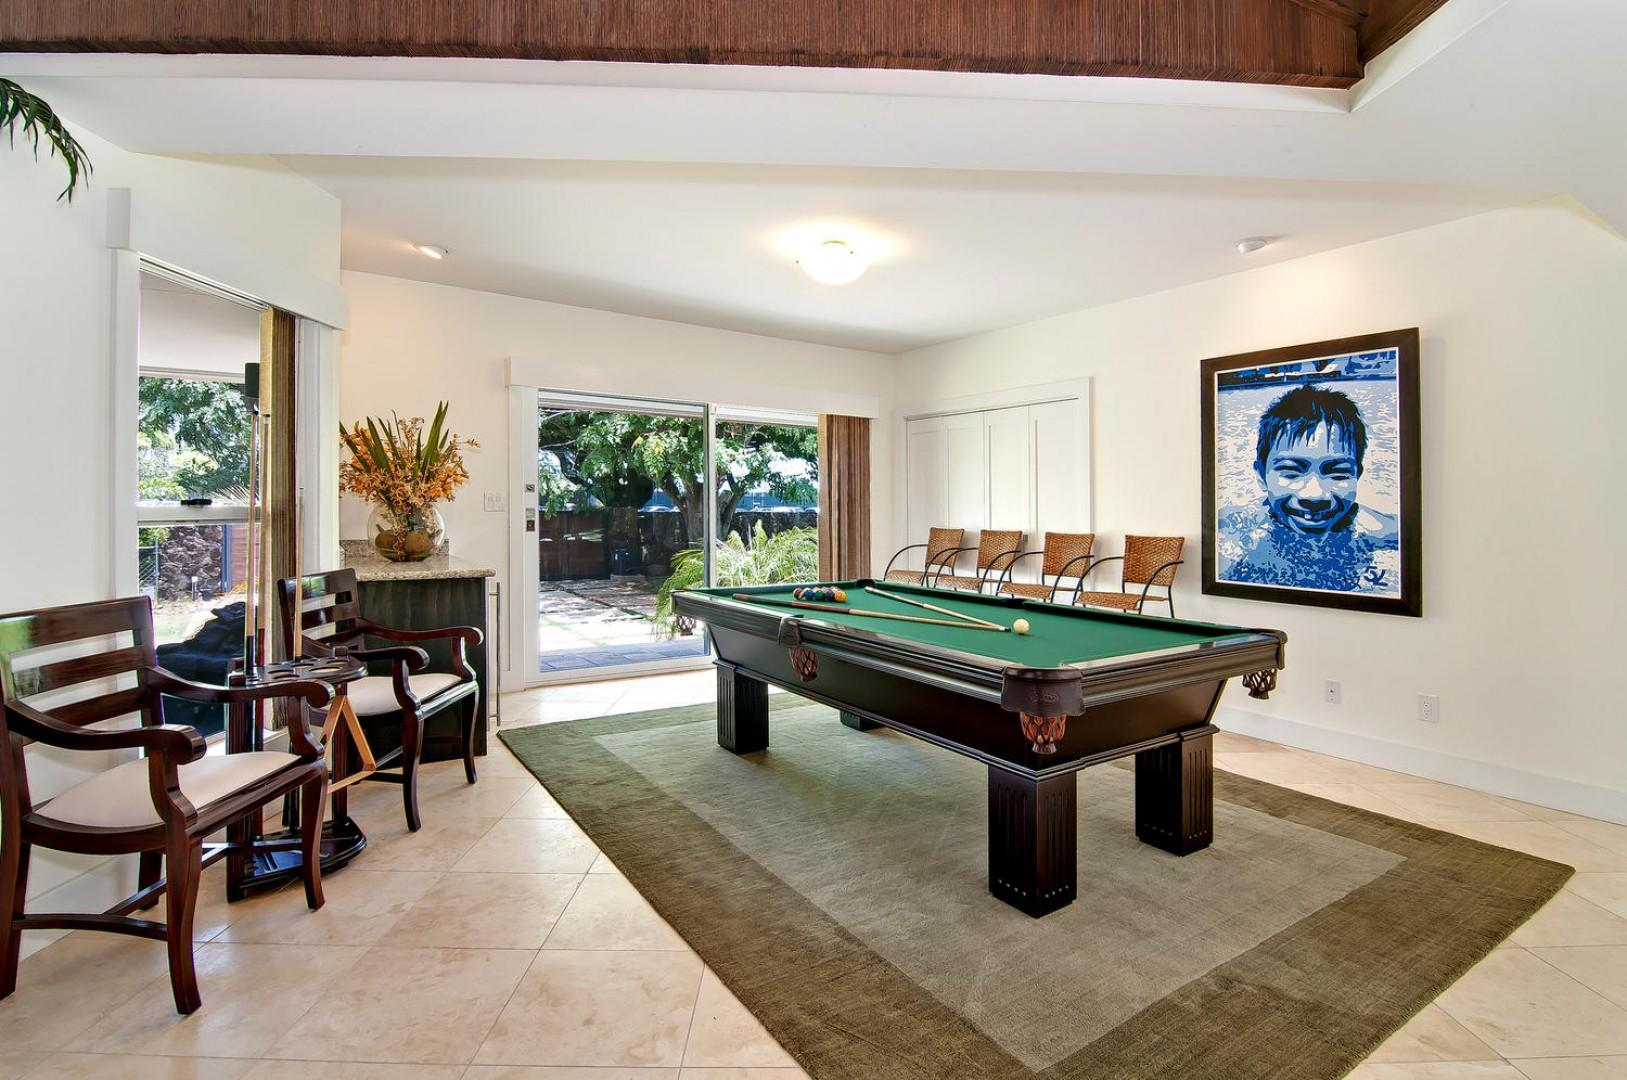 Game Area with Pool Table Convertible to a Ping Pong Table